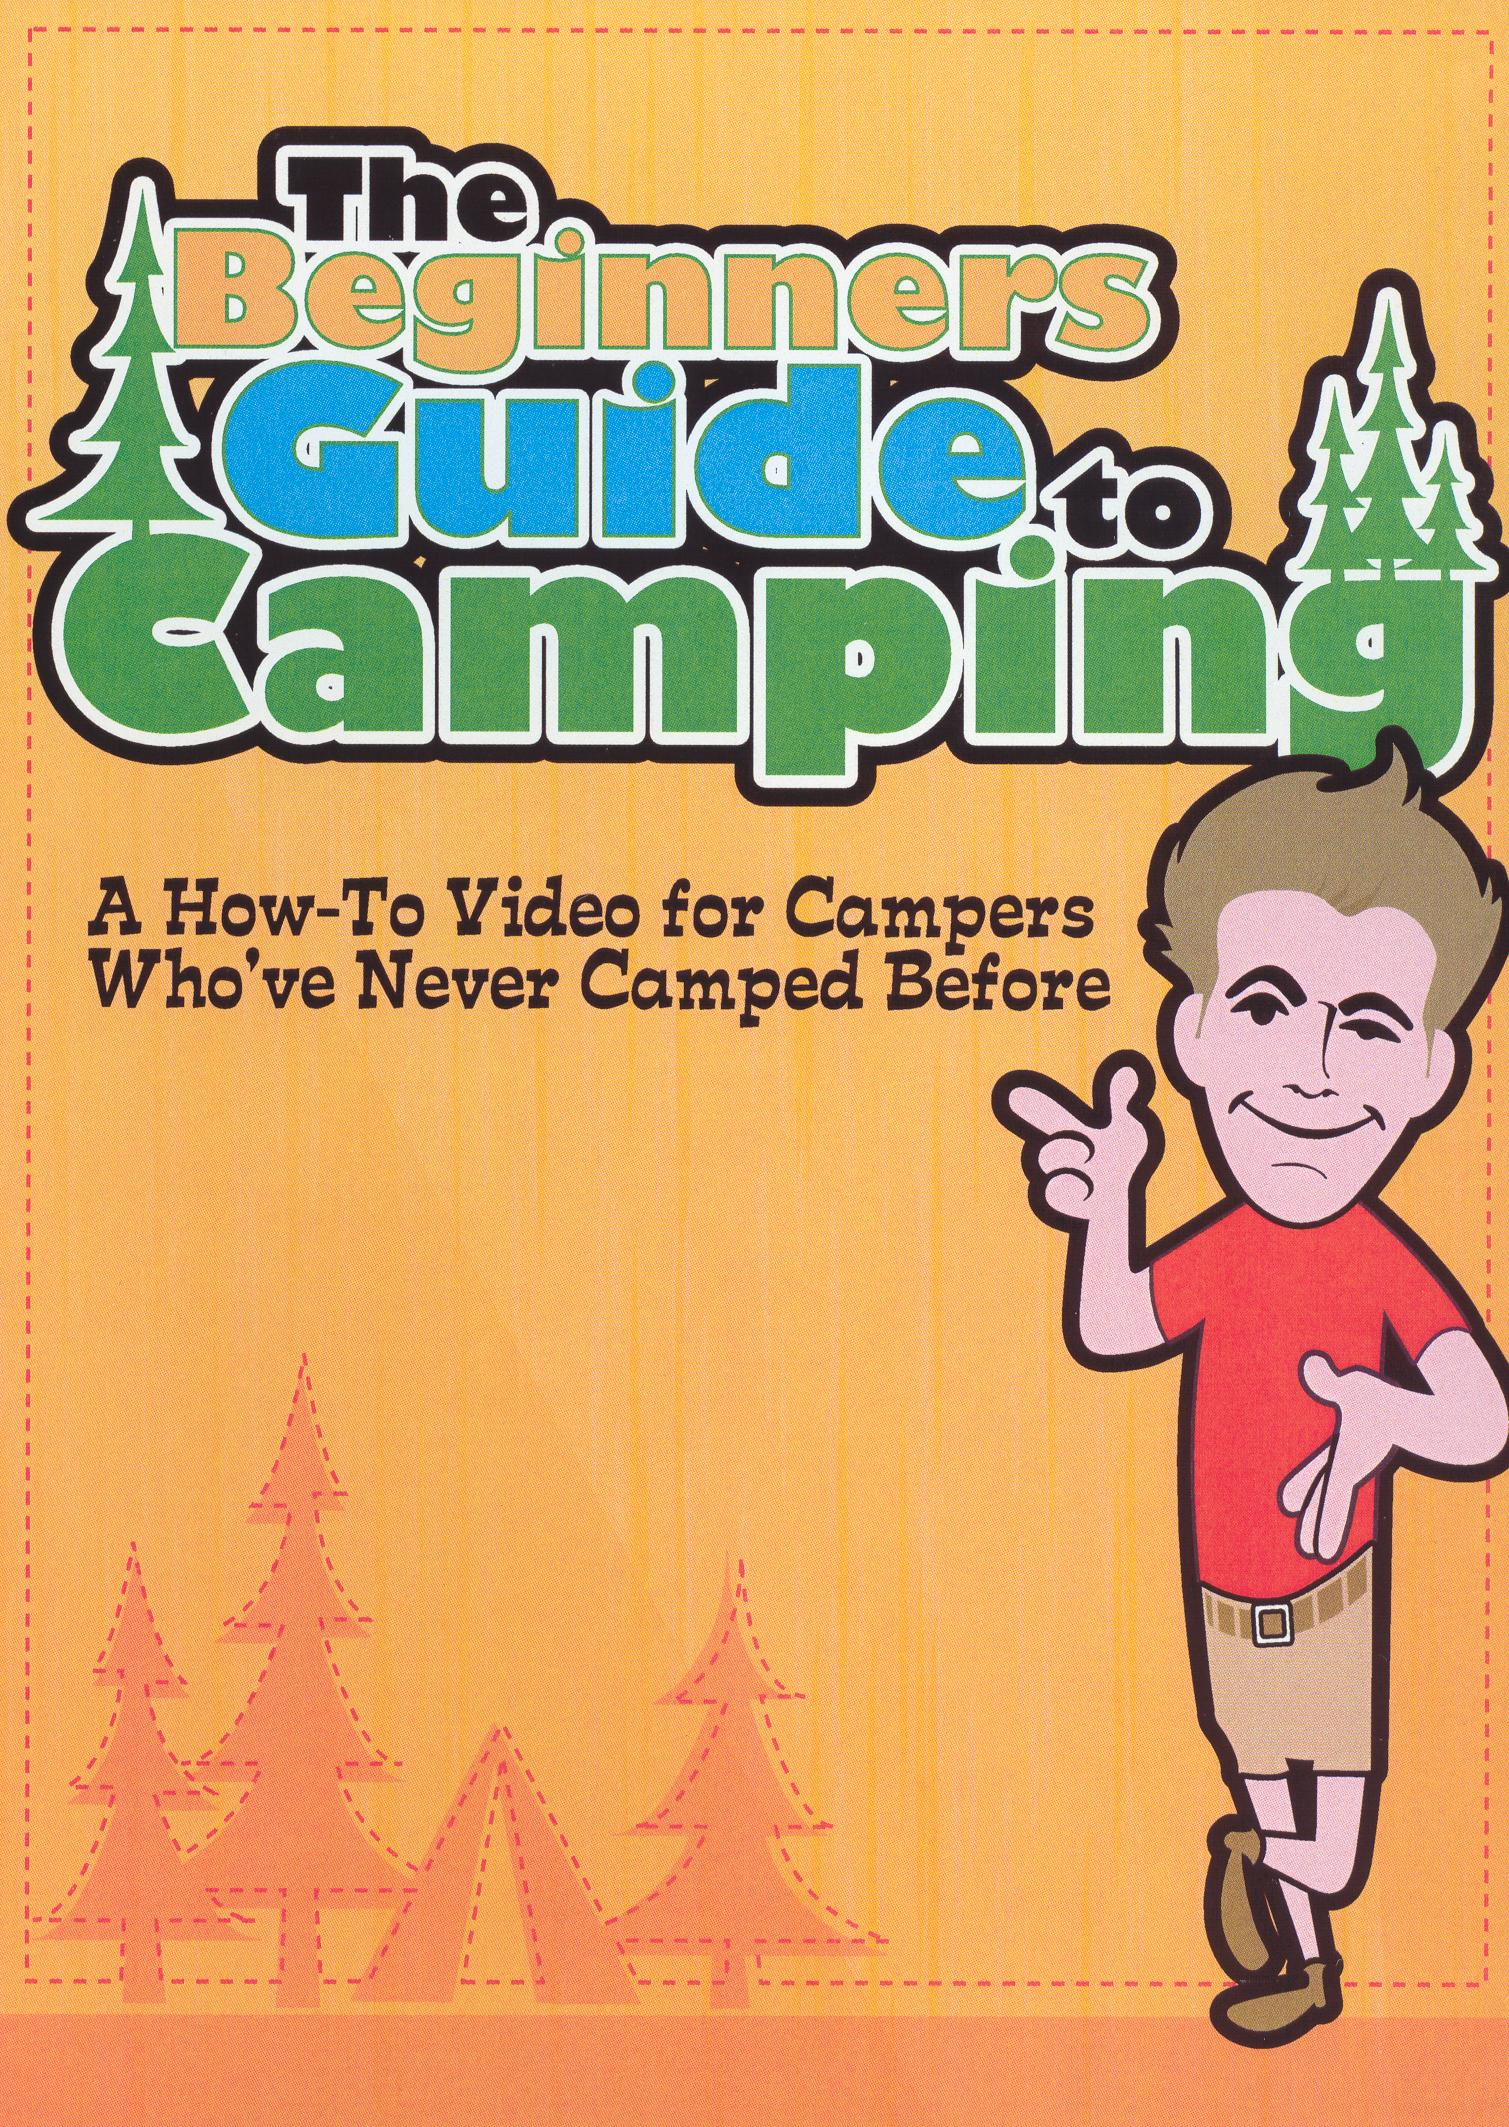 Stephen Taylor: The Beginner's Guide to Camping